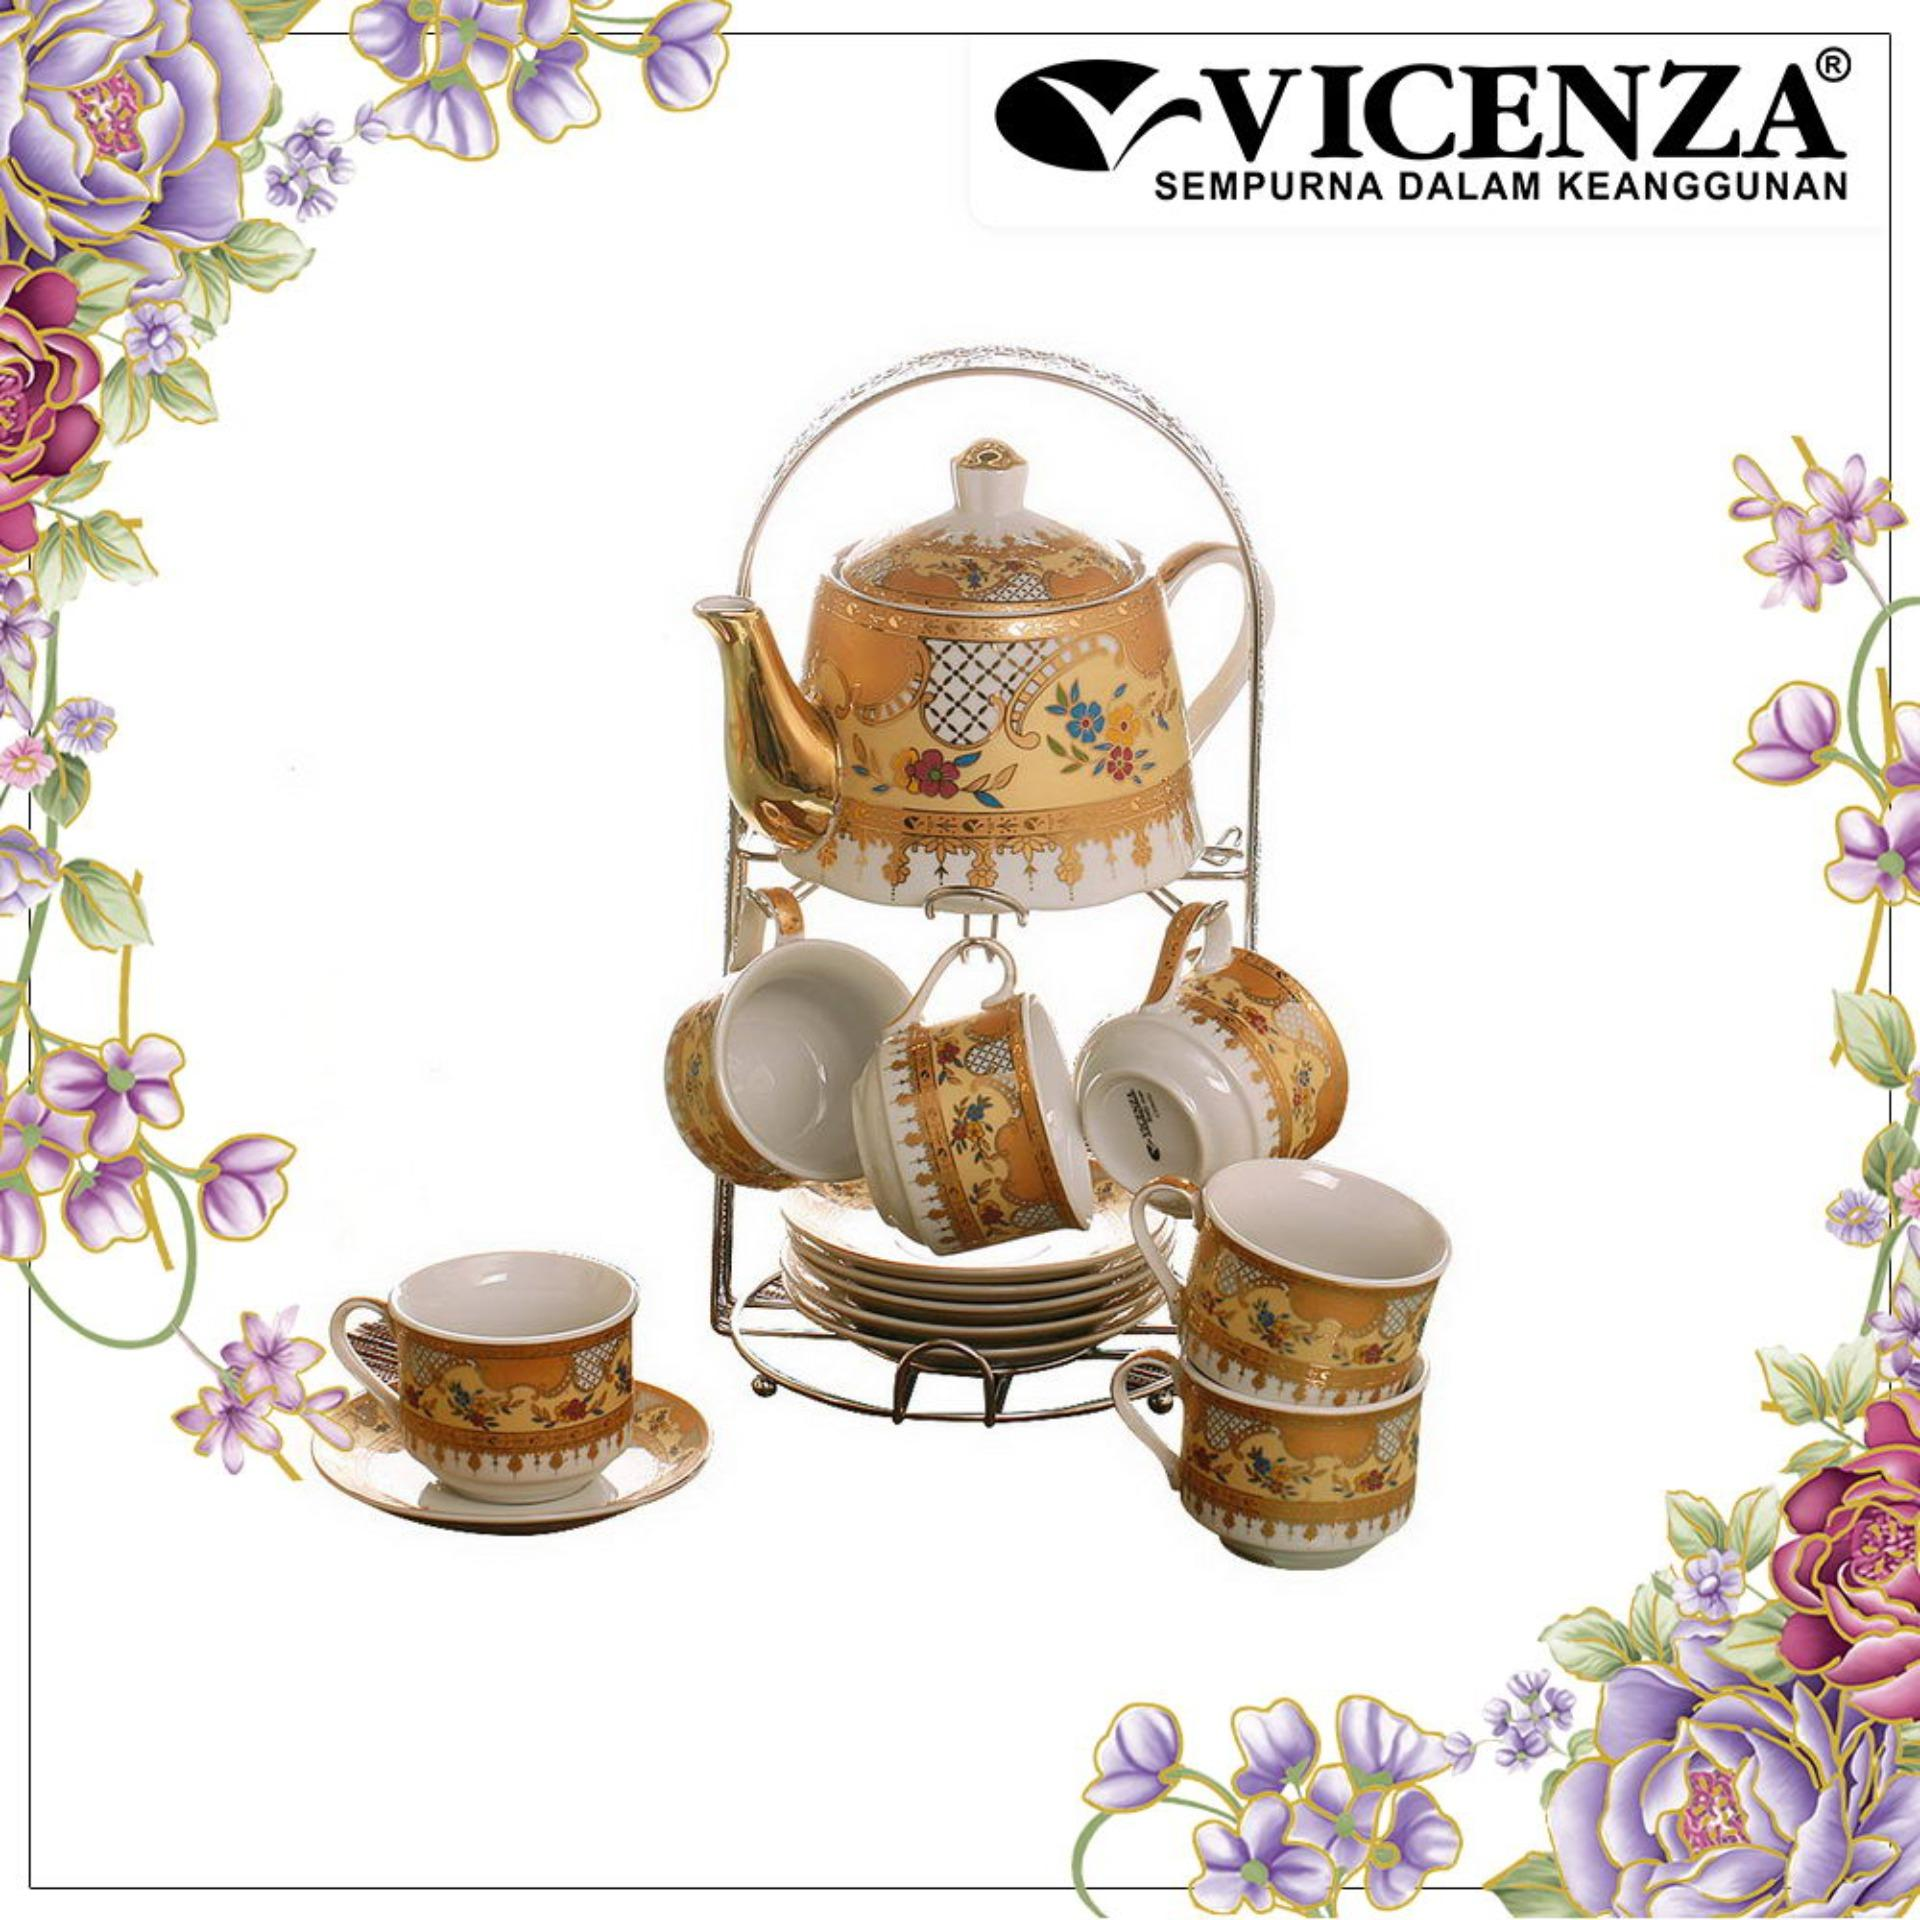 Vicenza TABLEWARE C96 (Cangkir dan Lepek dengan Teko / Cup and Saucer, Tea Set with Teapot)